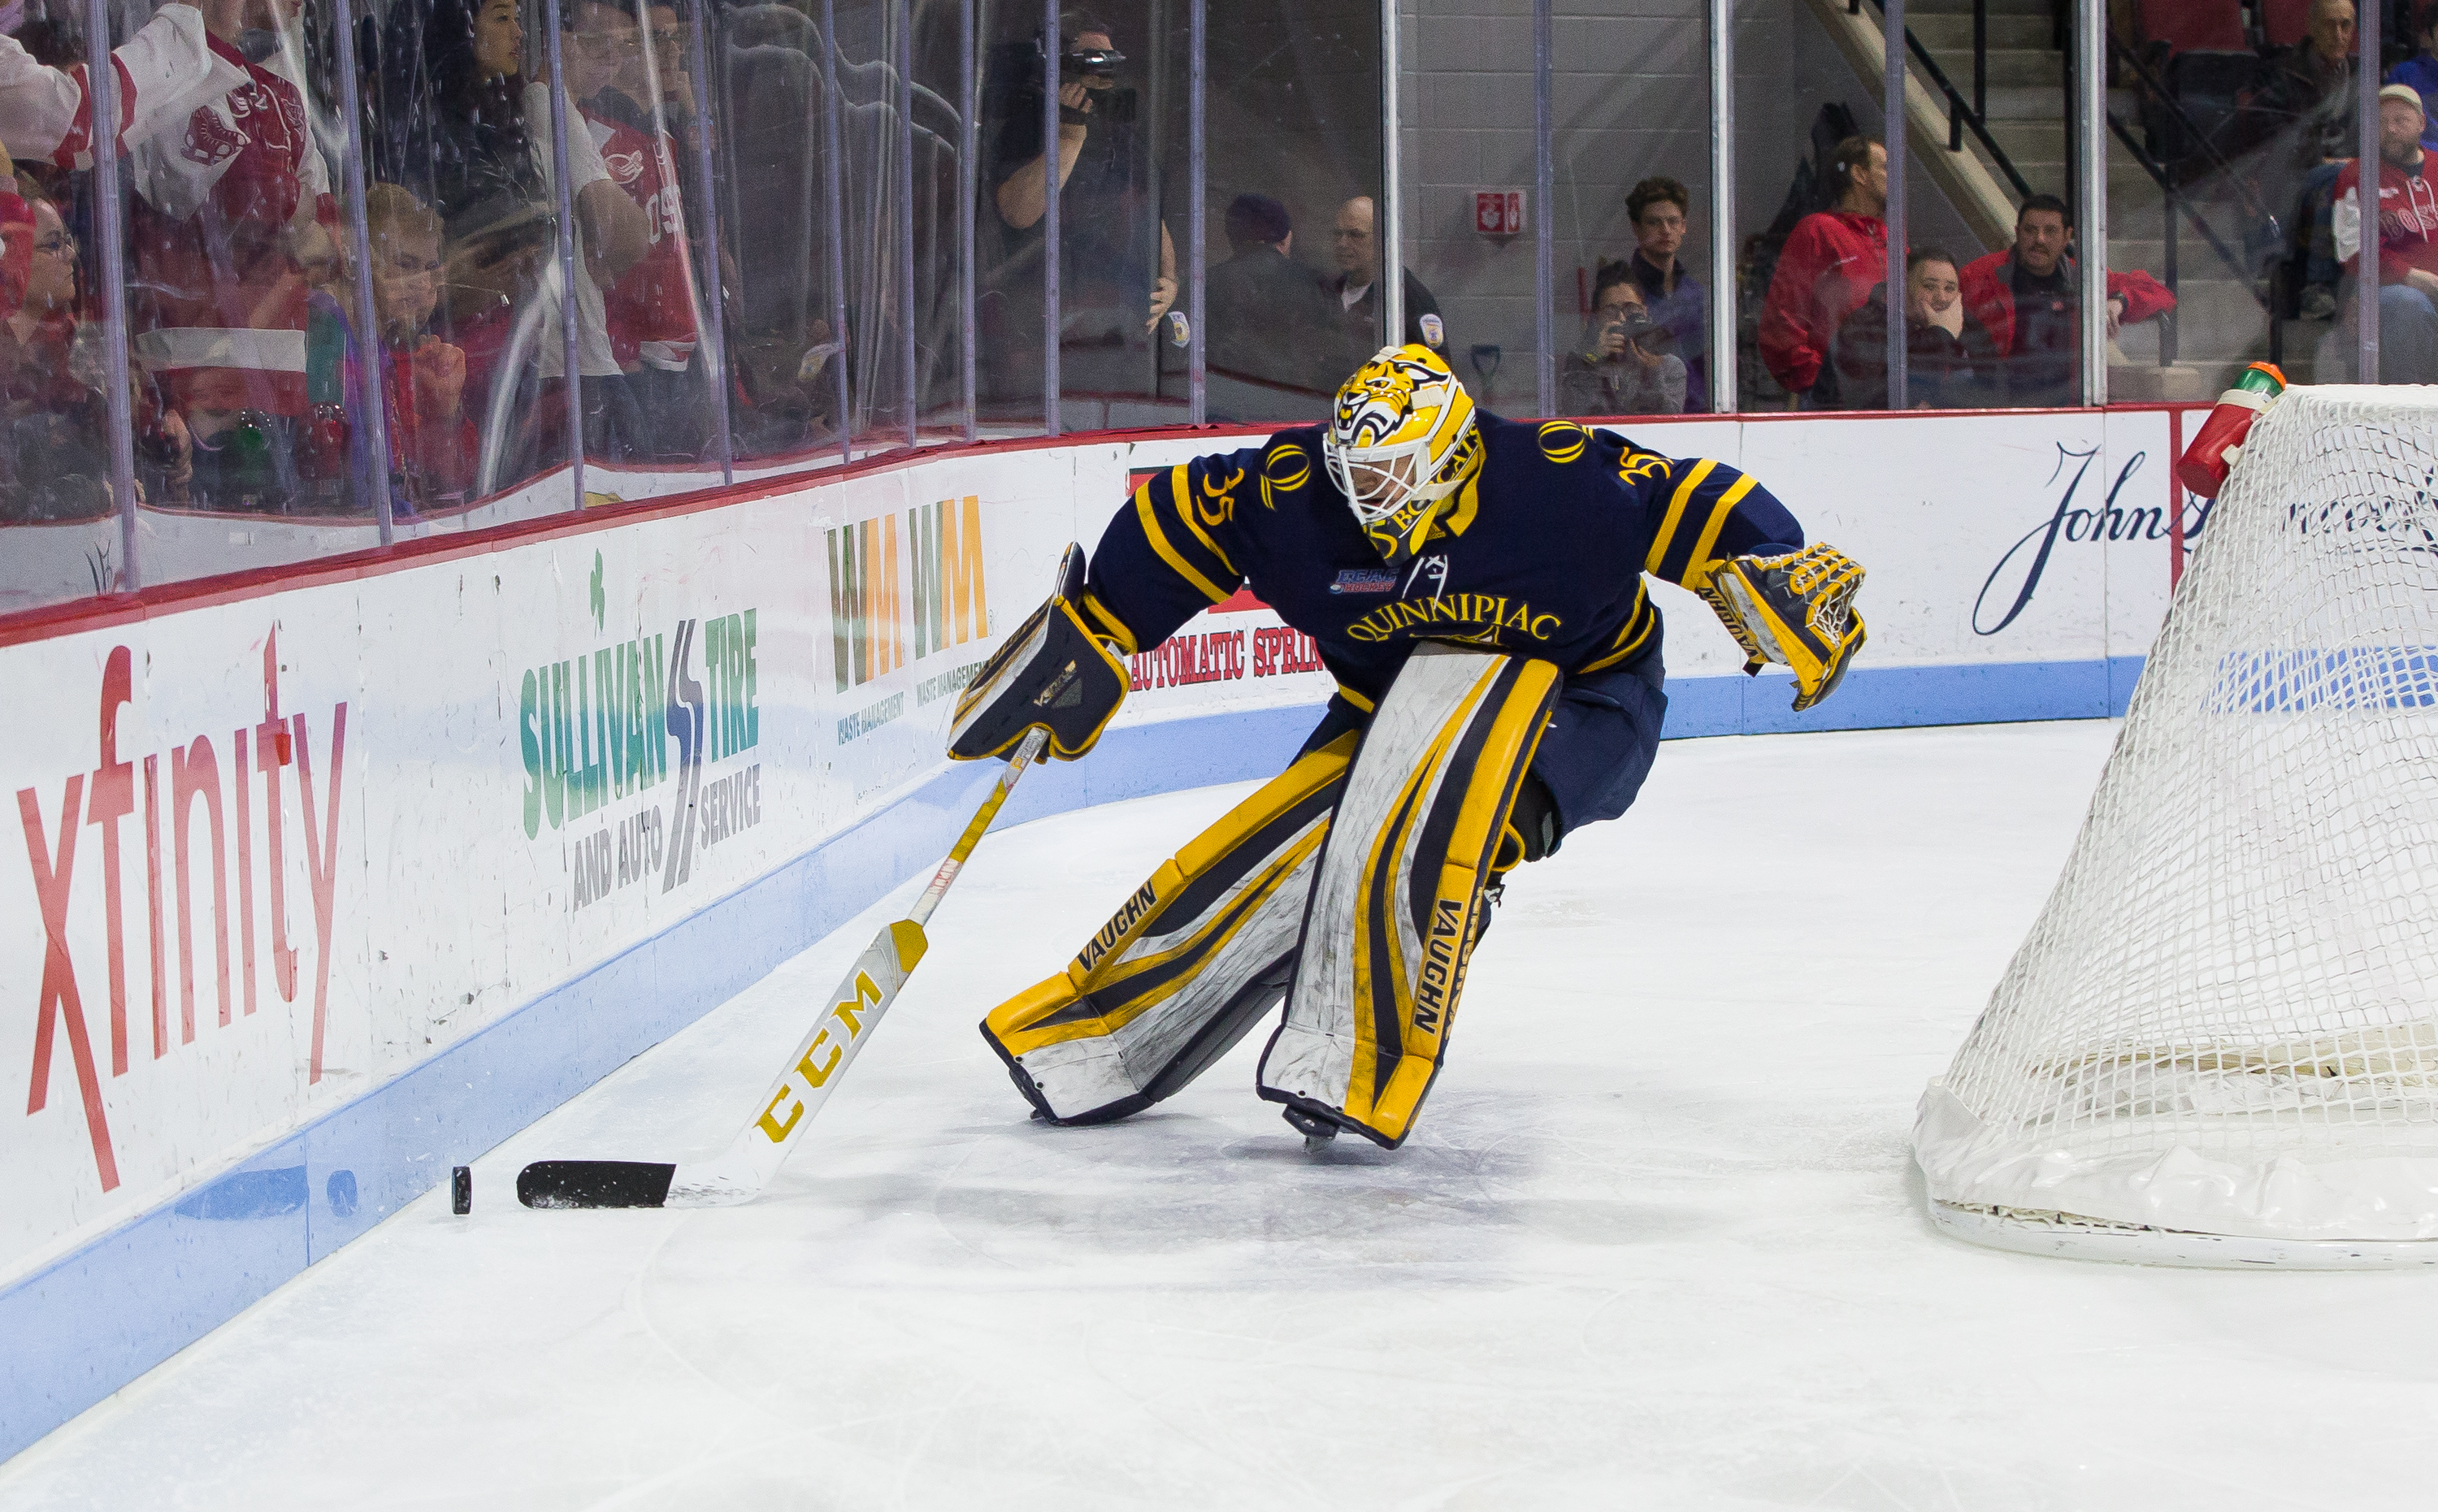 Andrew Shortridge of the Quinnipiac University Bobcats tends goal against the Boston University Terriers during NCAA men's hockey at Agganis Arena on January 19, 2019 in Boston, Massachusetts. The Bobcats won 4-3 on a goal with 2.5 seconds remaining in re